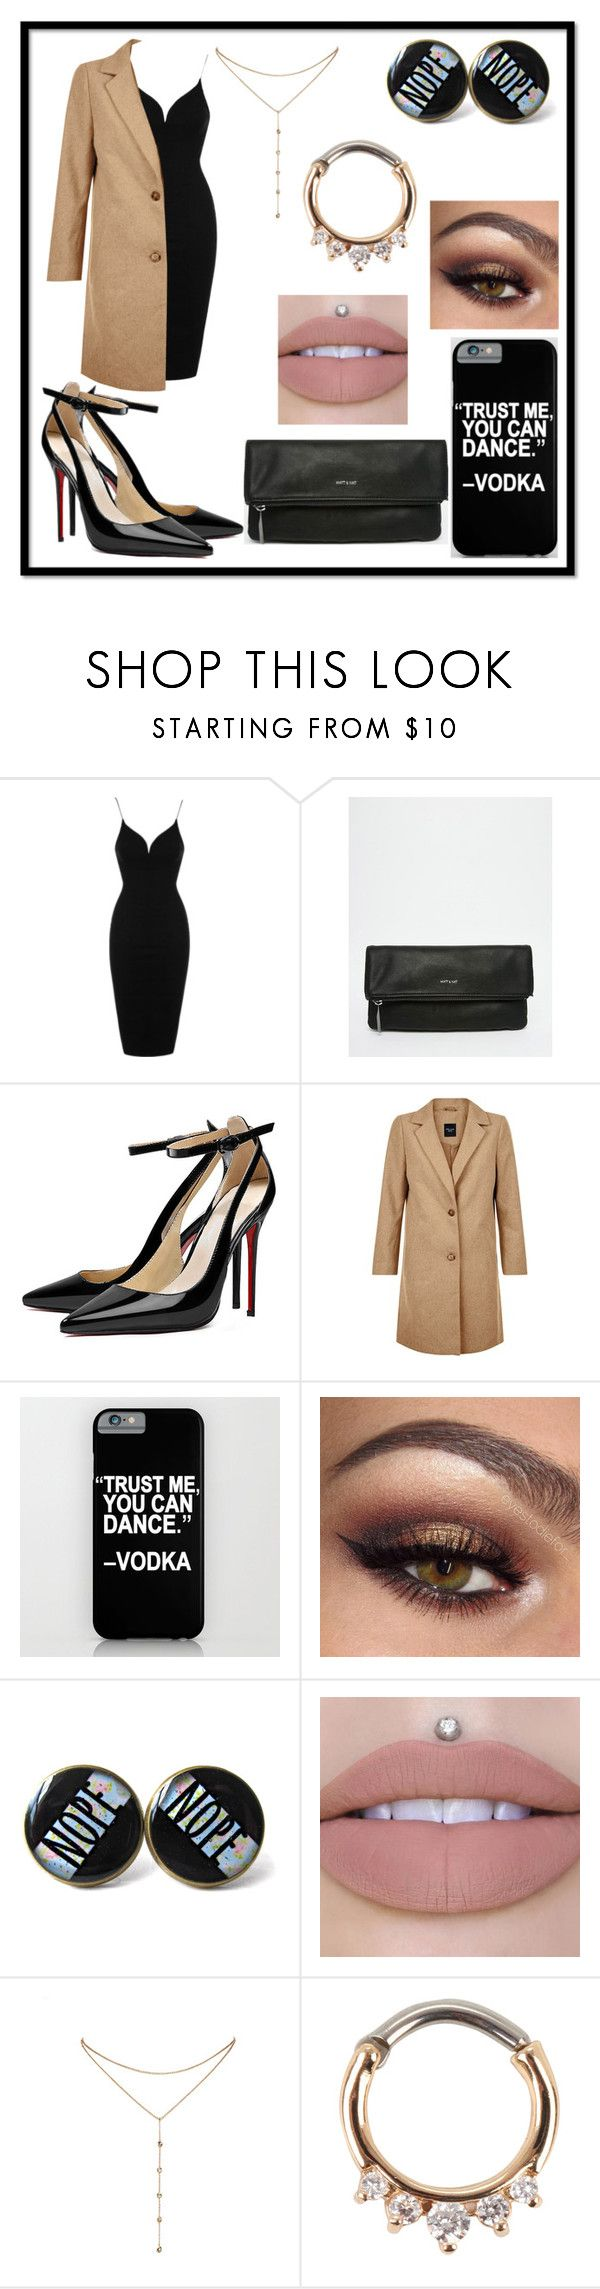 """Untitled #226"" by queen-beanie ❤ liked on Polyvore featuring Rare London, Matt & Nat, New Look and GUESS by Marciano"